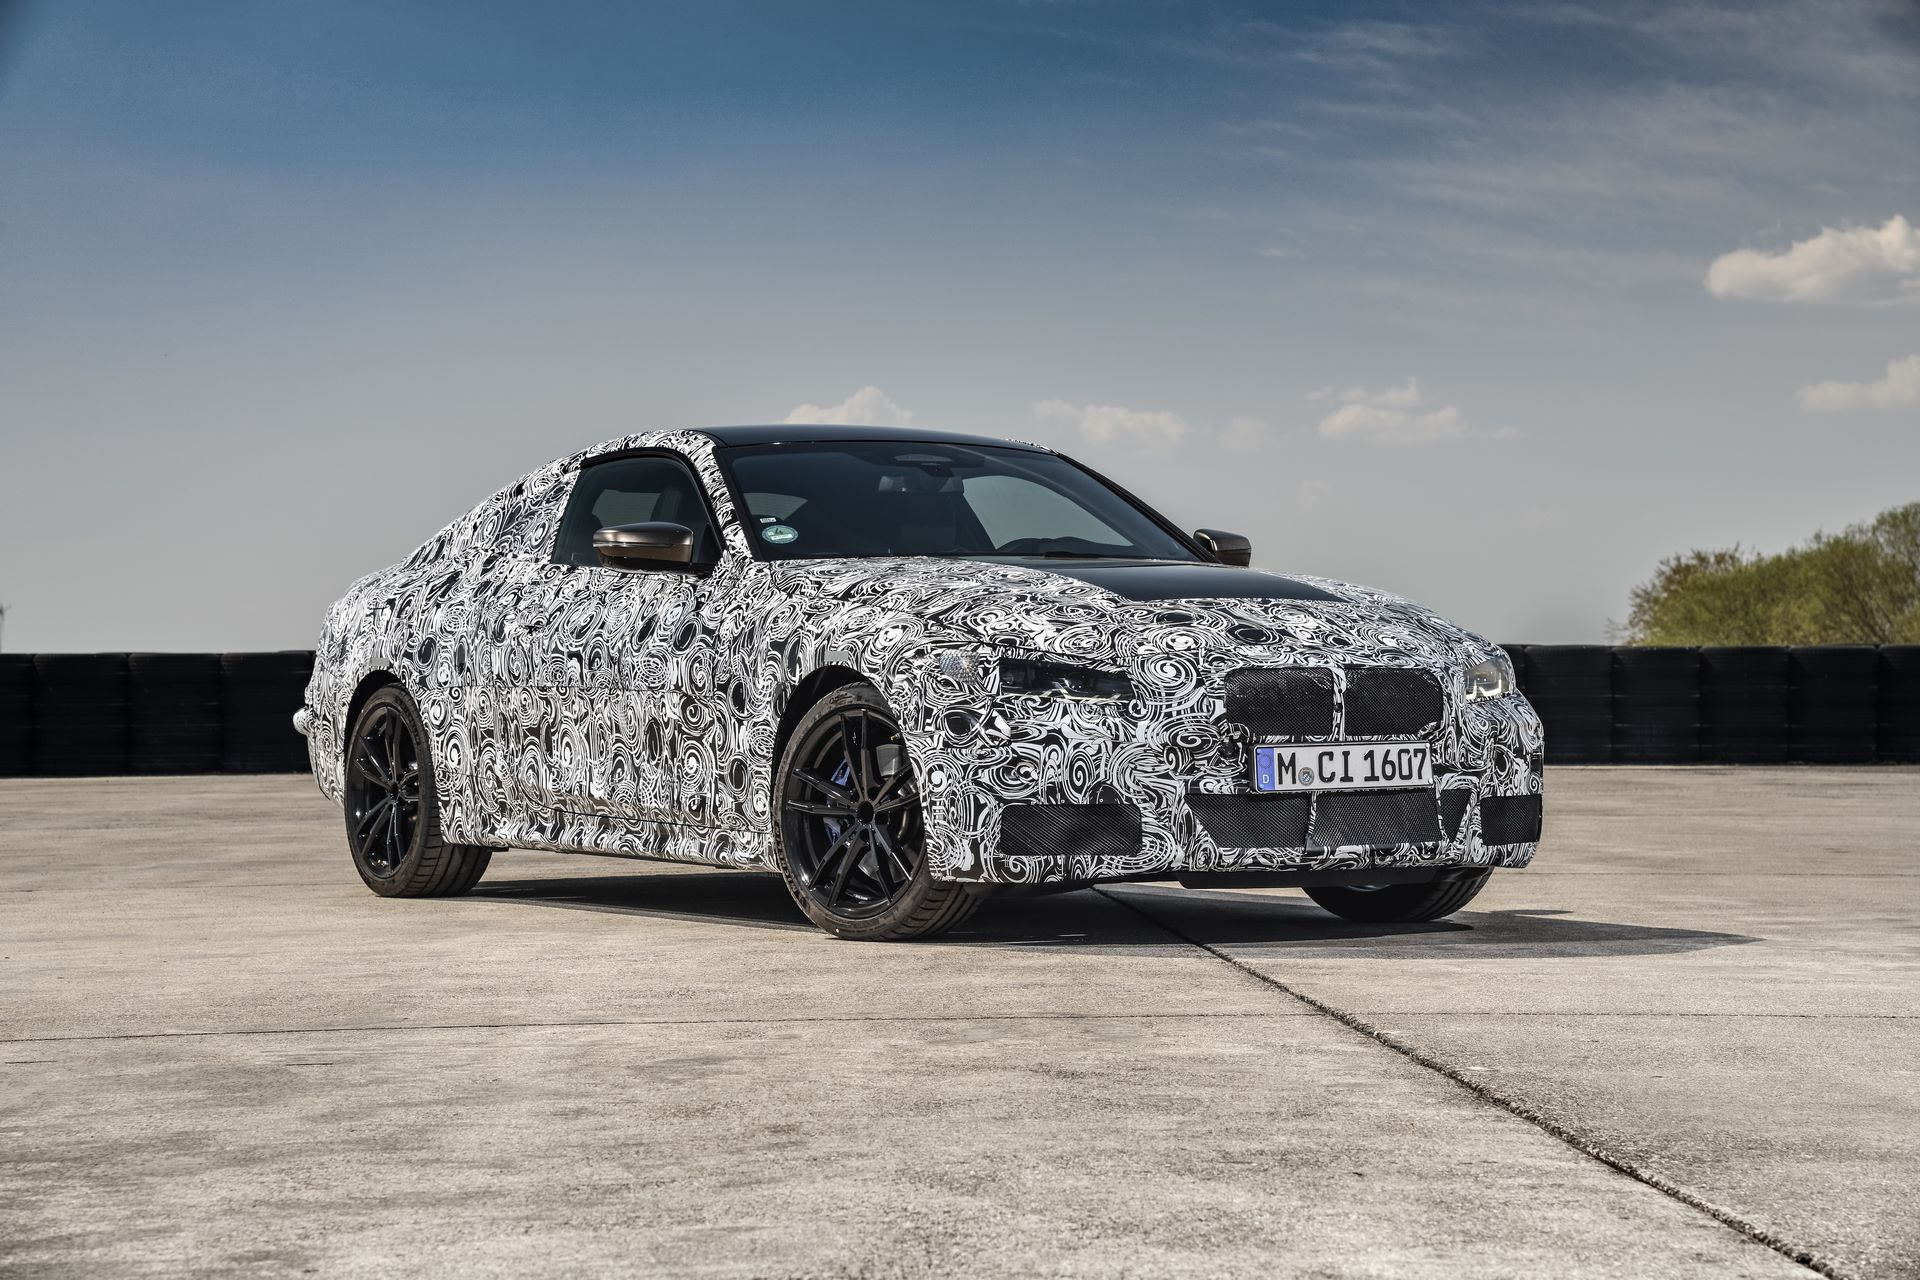 BMW-4-Series-M440i-camouflaged-27